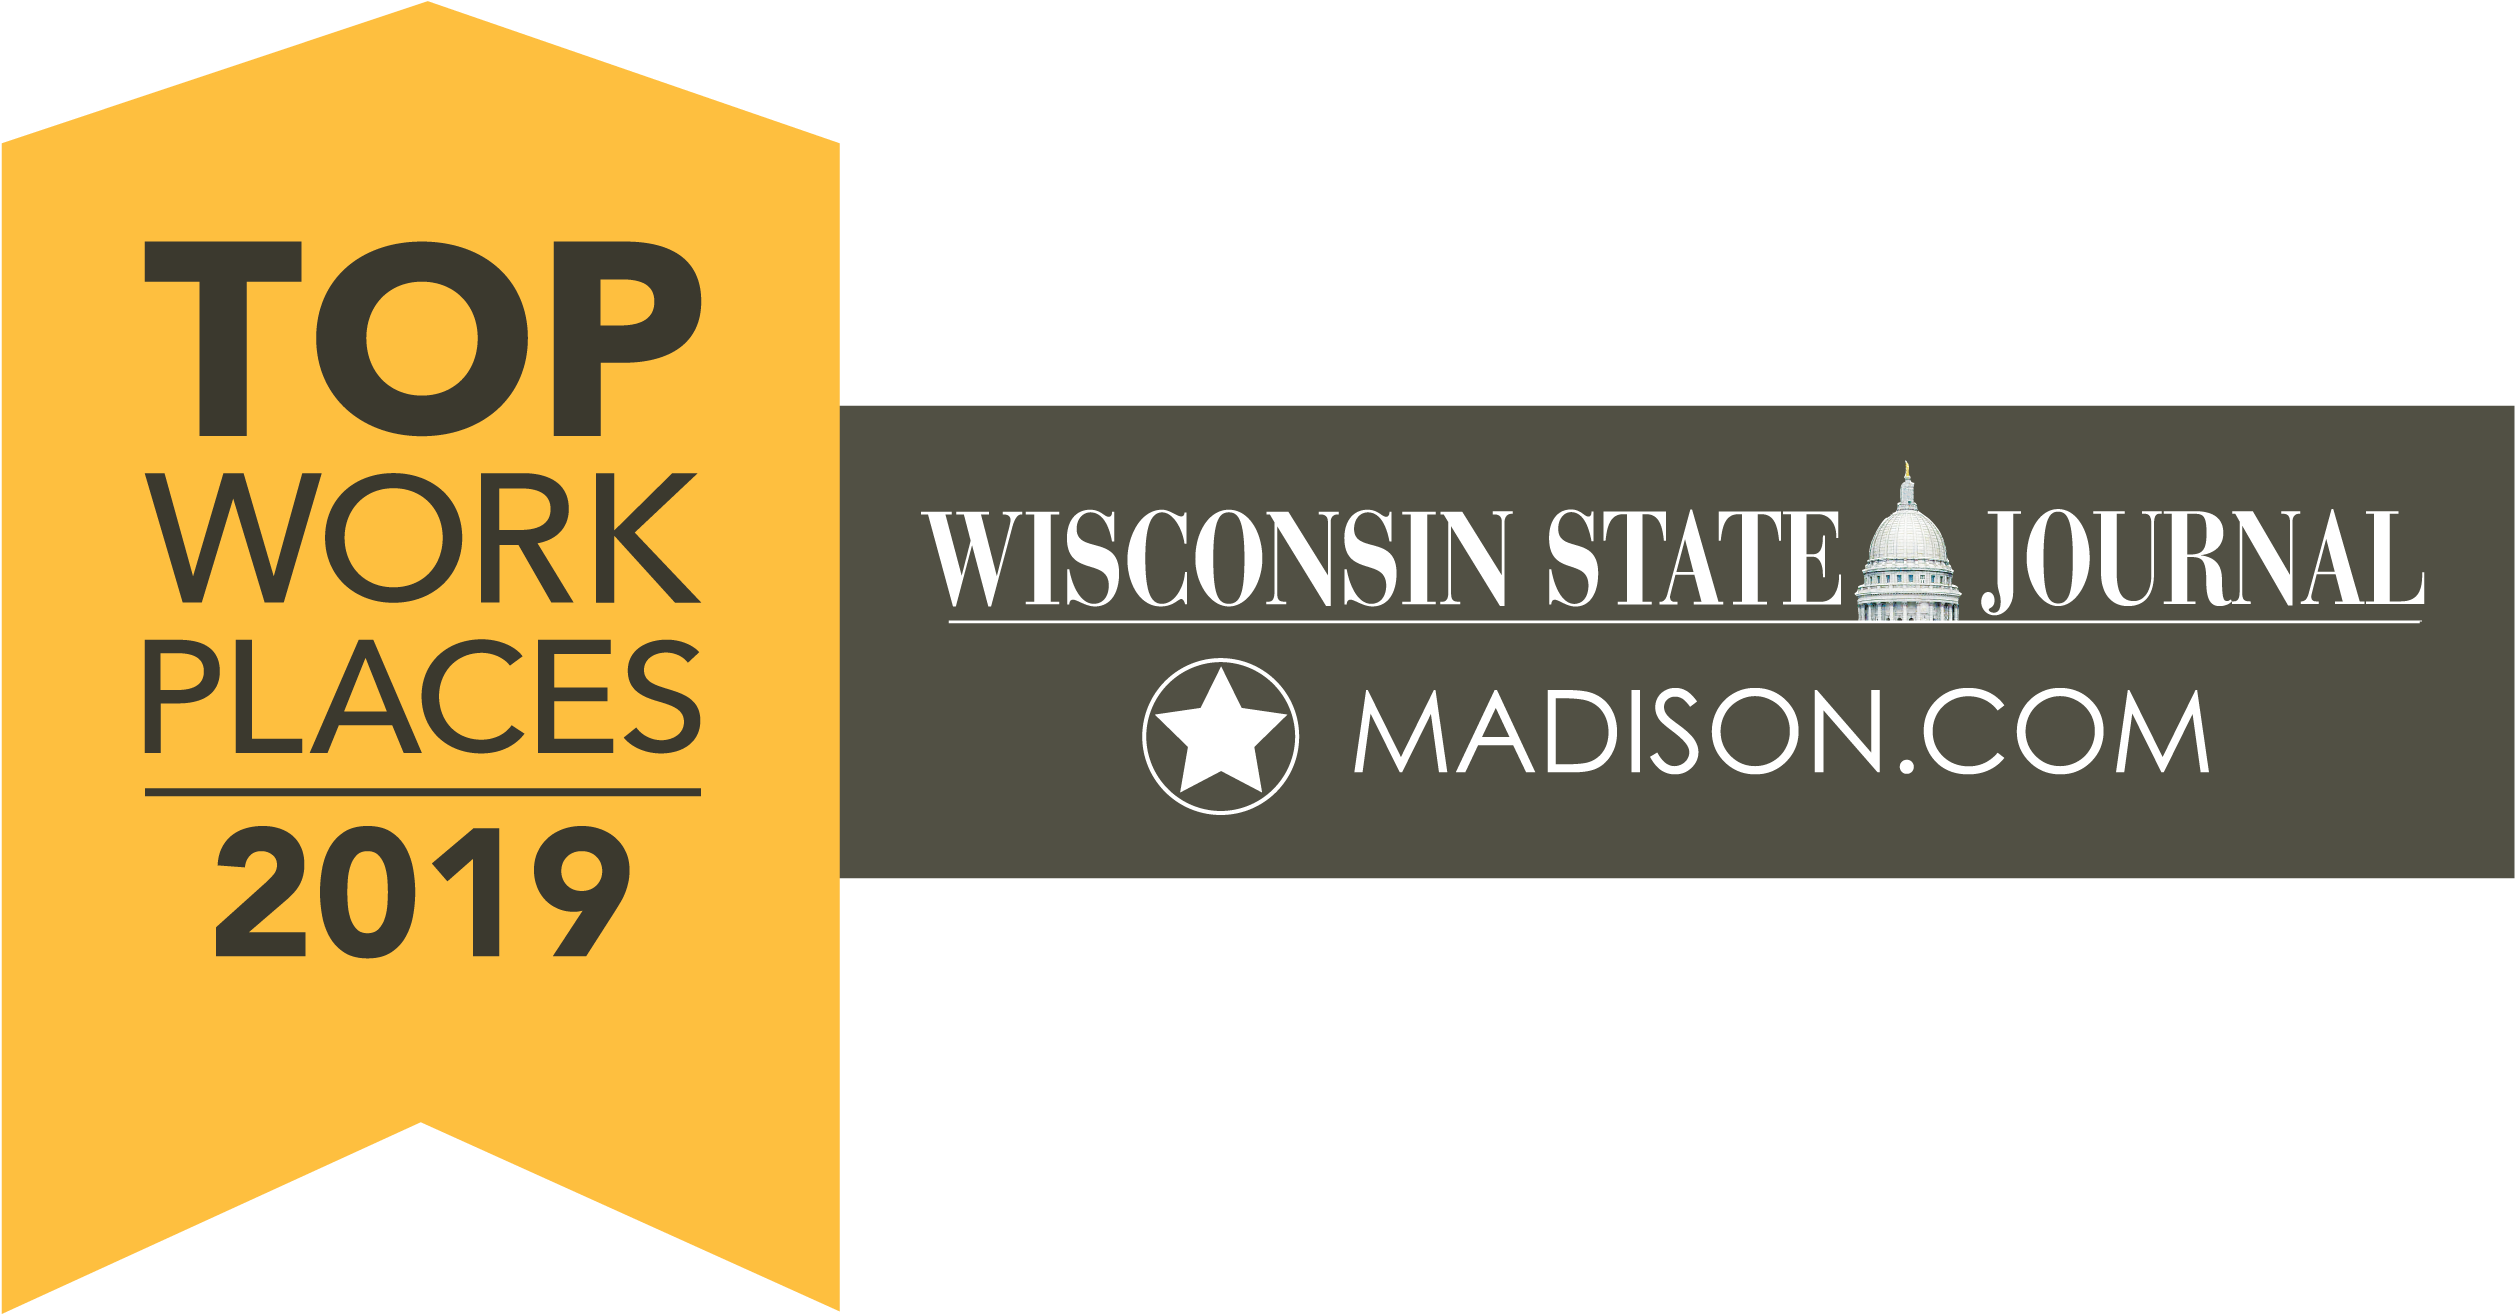 Top Workplaces - Madison, Wisconsin State Journal